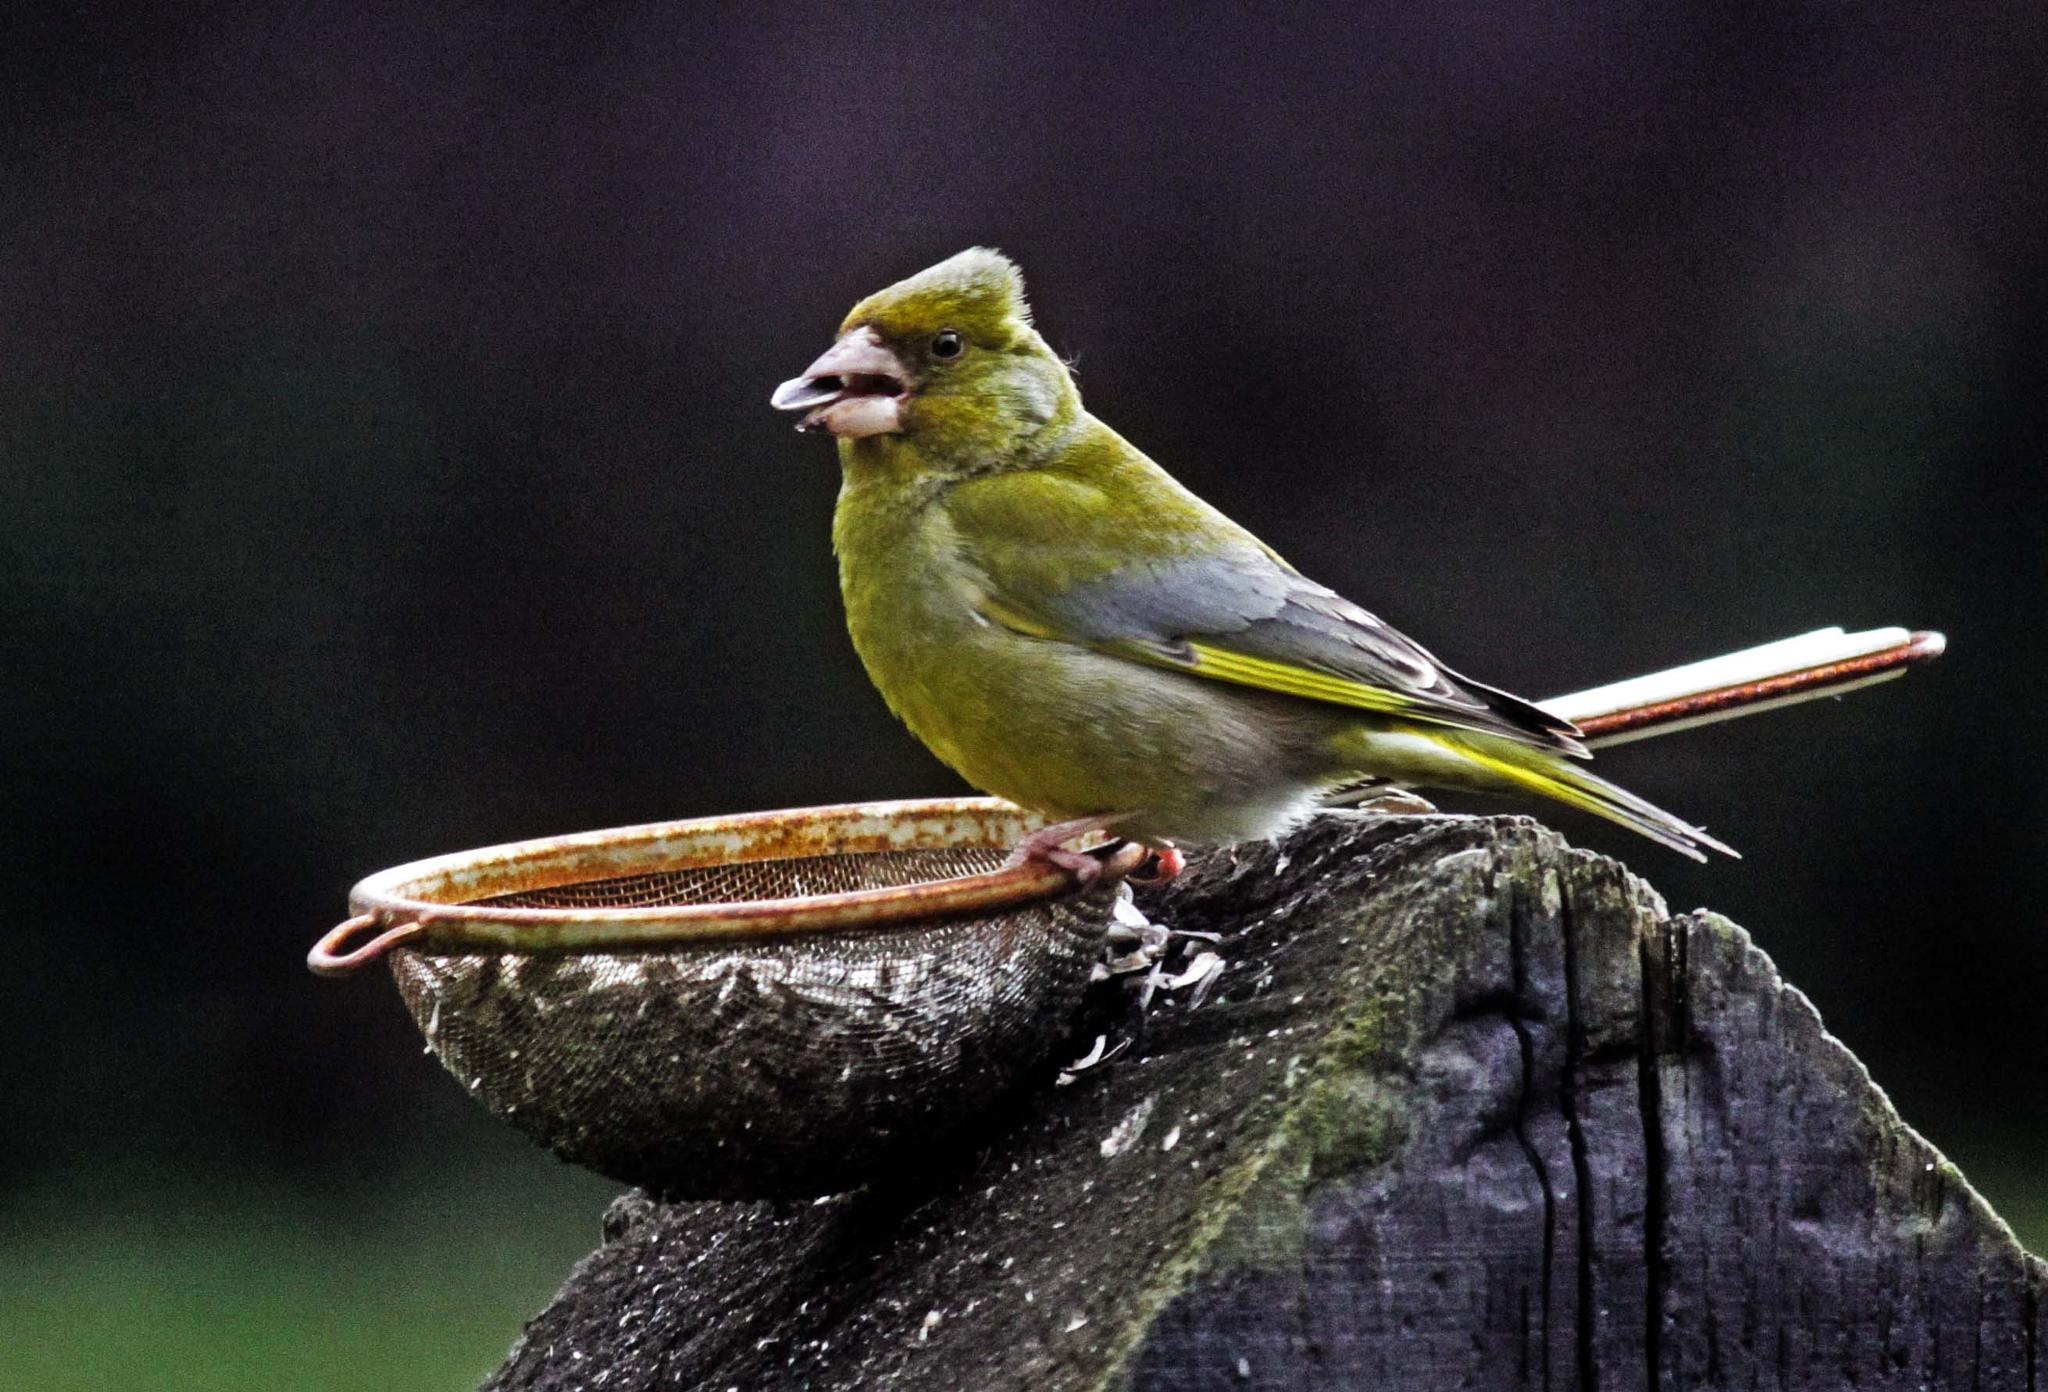 Greenfinch by mamstudio